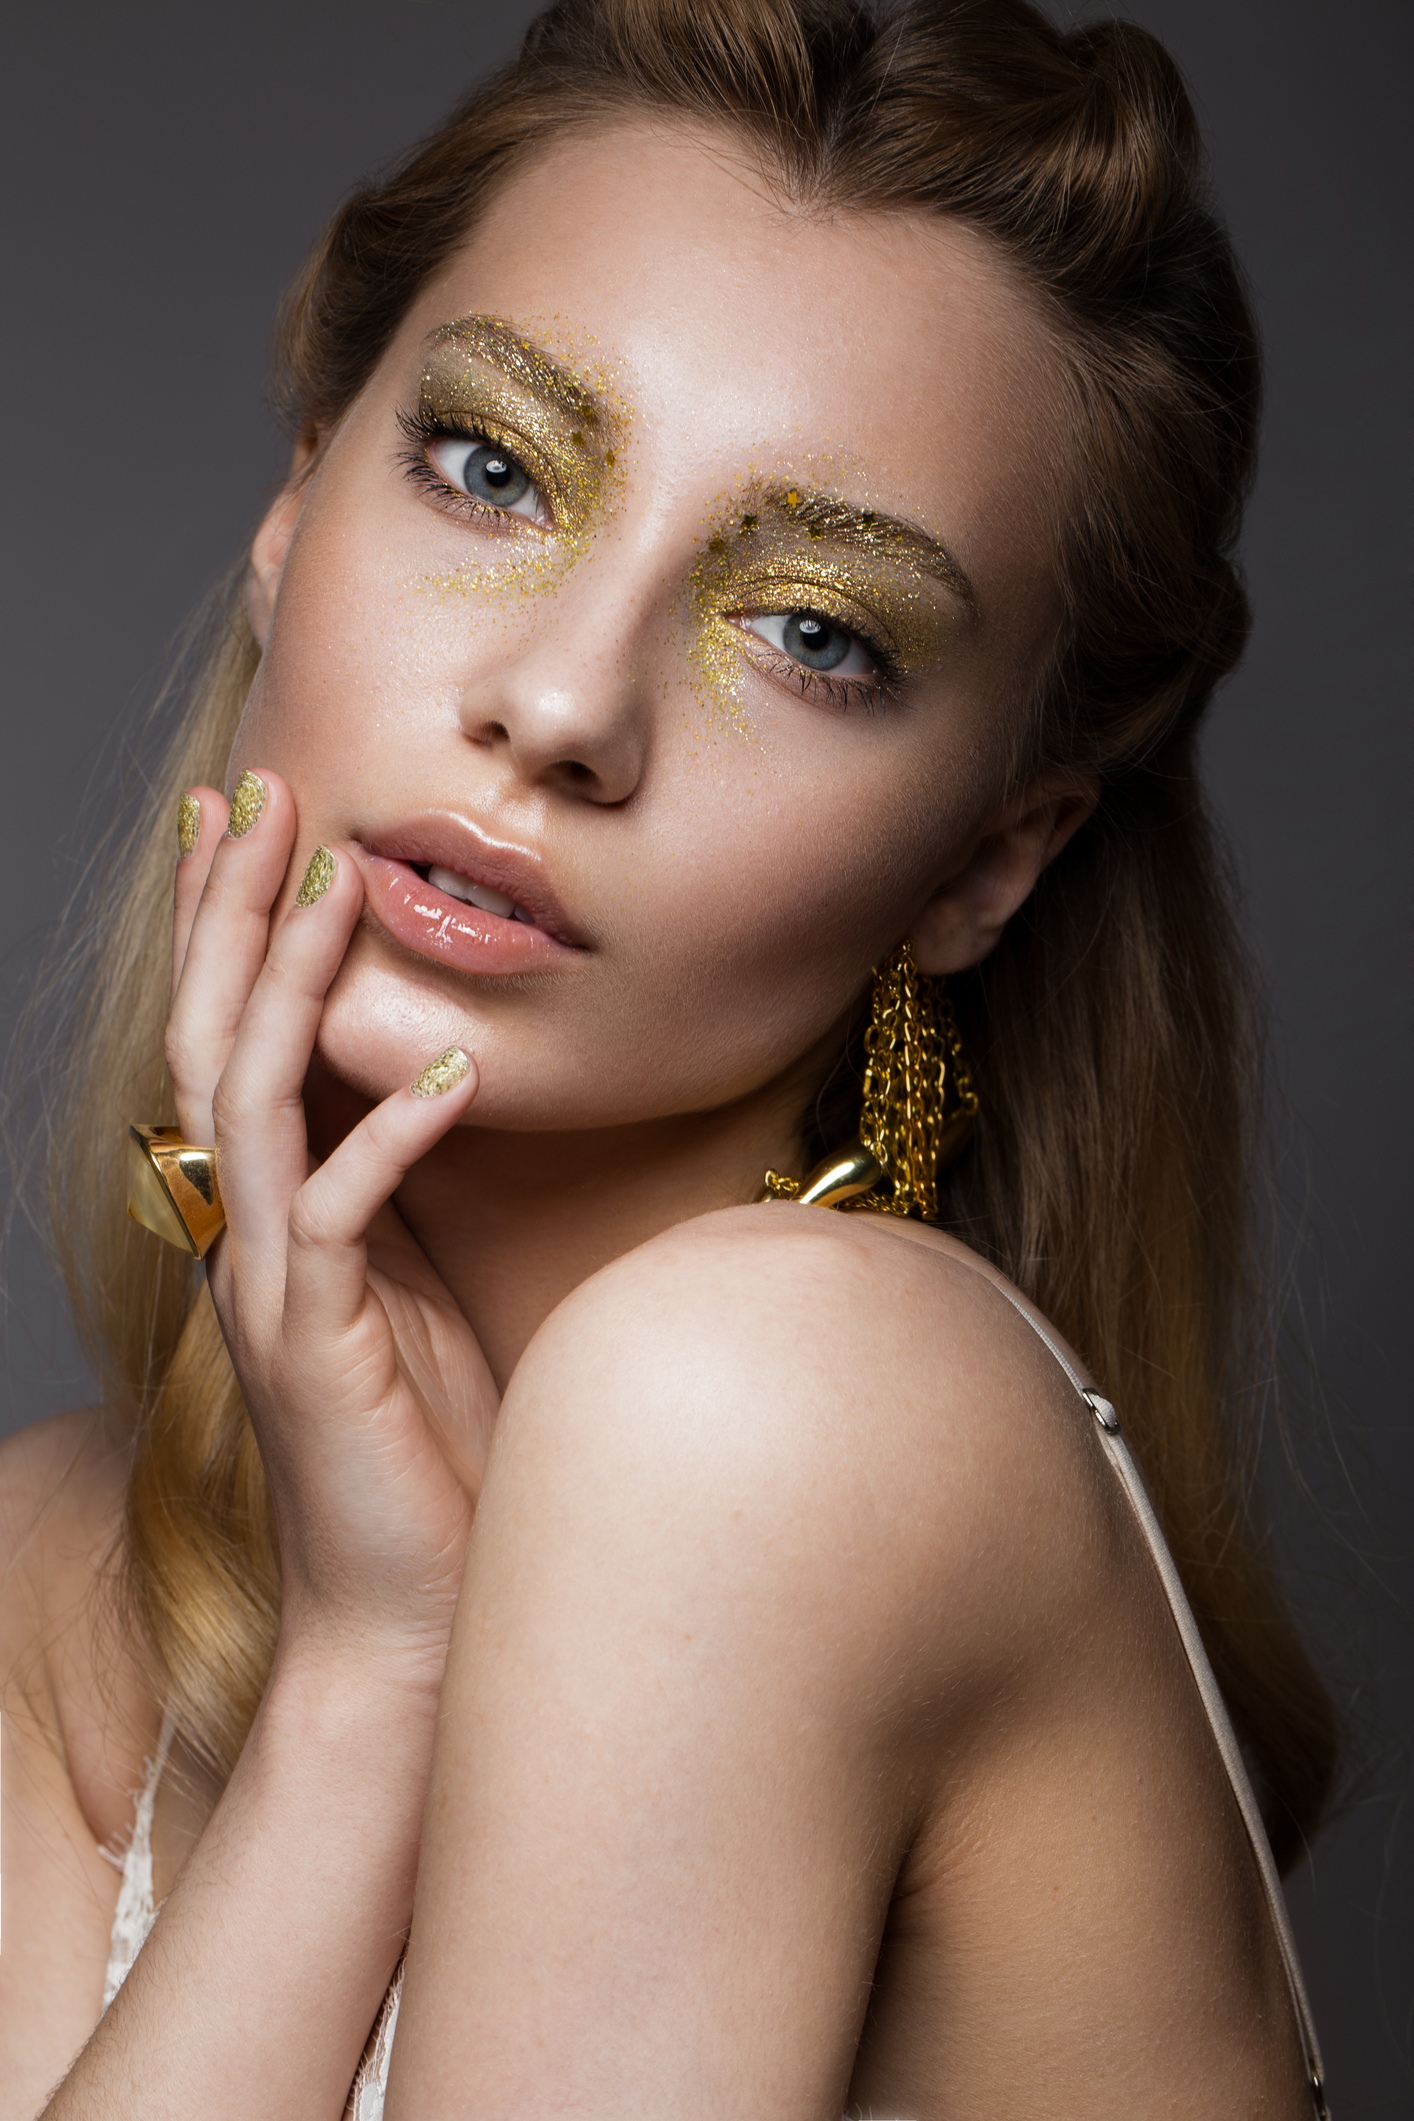 Beautiful girl in Underwear with creative gold makeup and hair. The beauty of the face. Photos shot in the studio. (Beautiful girl in Underwear with creative gold makeup and hair. The beauty of the face. Photos shot in the studio., ASCII, 116 componen